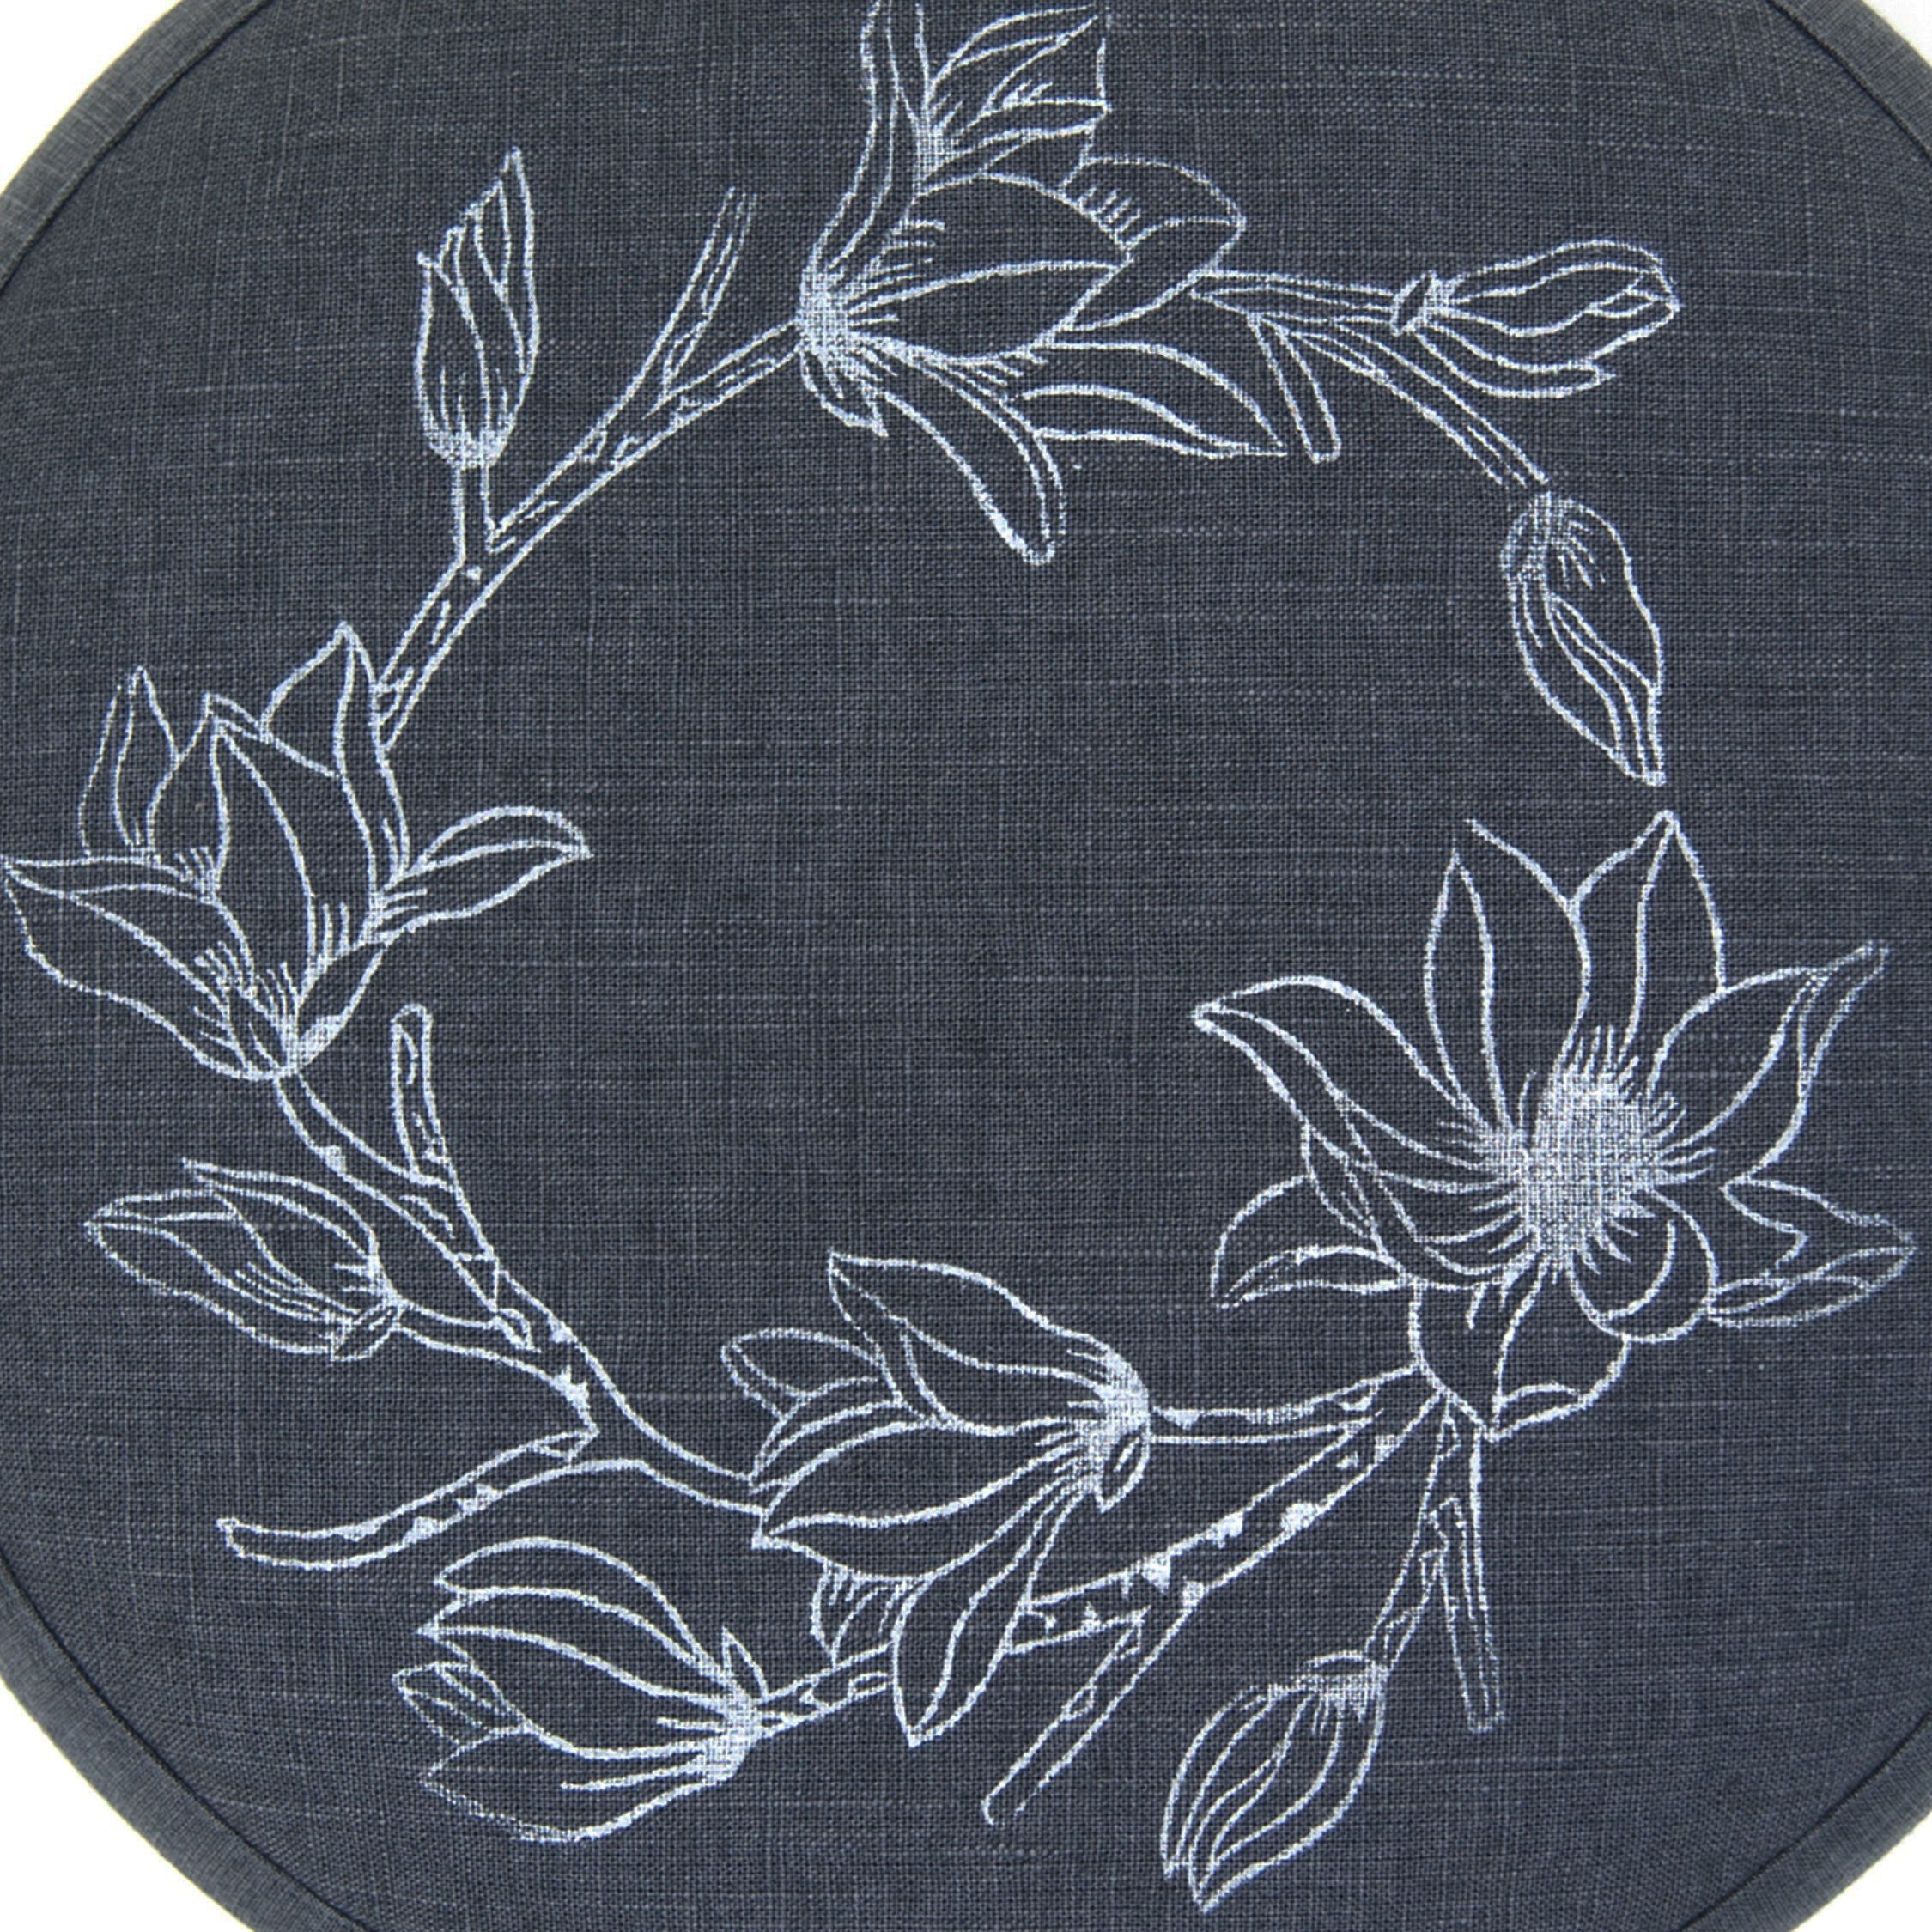 Magnolia print on the flax linen meditation cushion